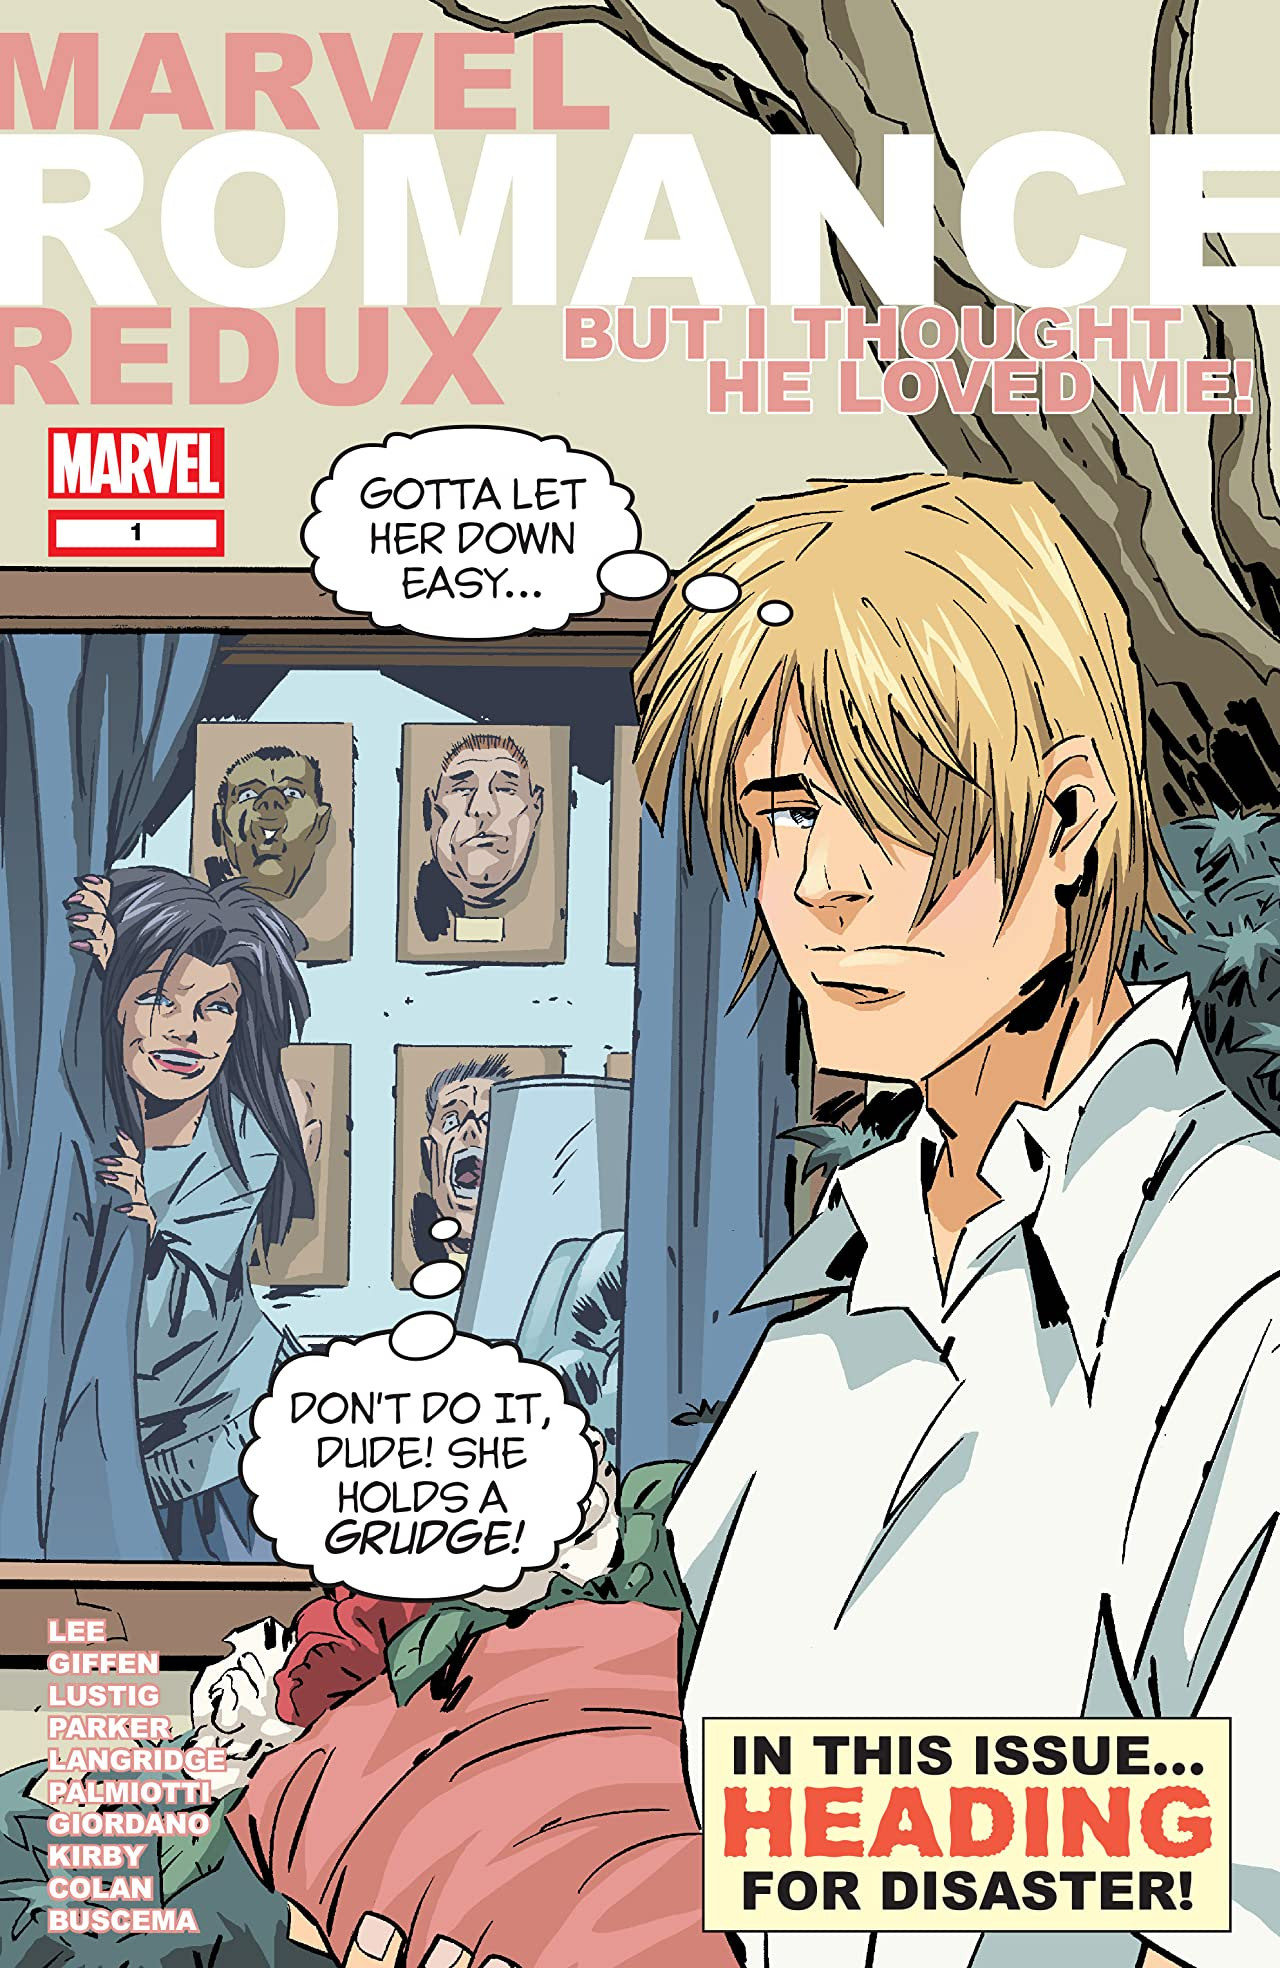 Marvel Romance Redux: But I Thought He Loved Me Vol 1 1